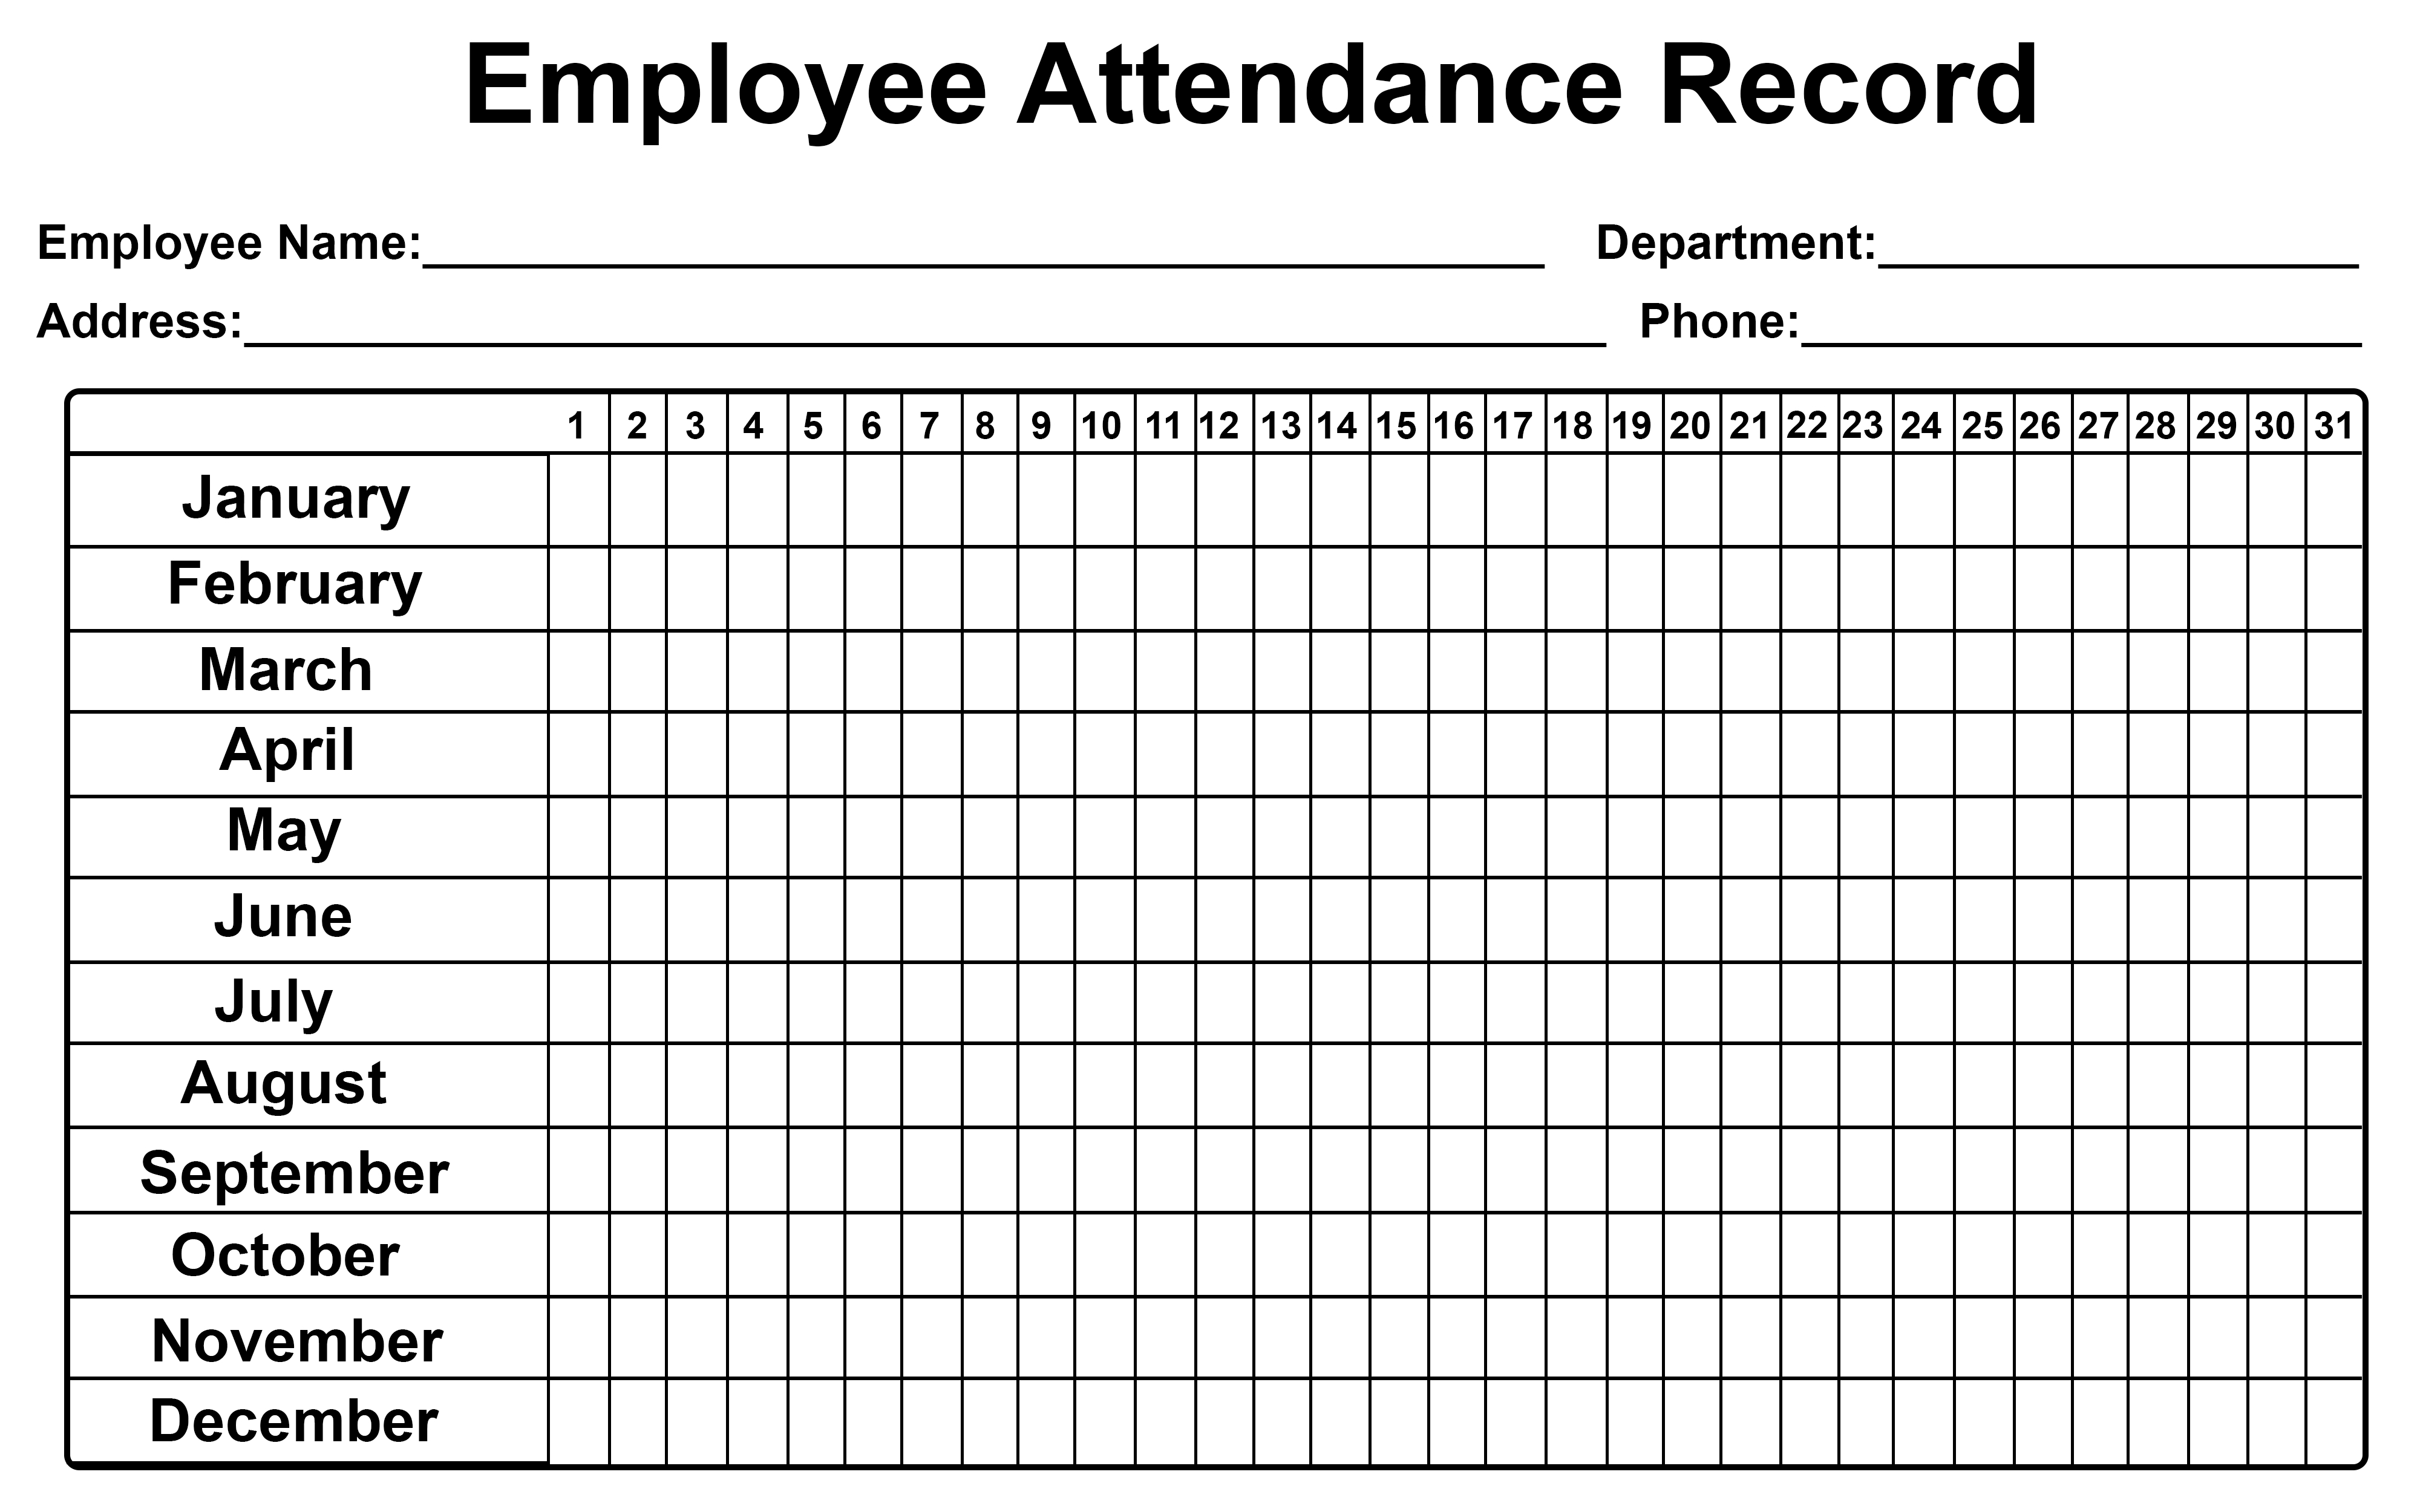 Employee Attendance Tracker Sheet 2019 | Printable Calendar